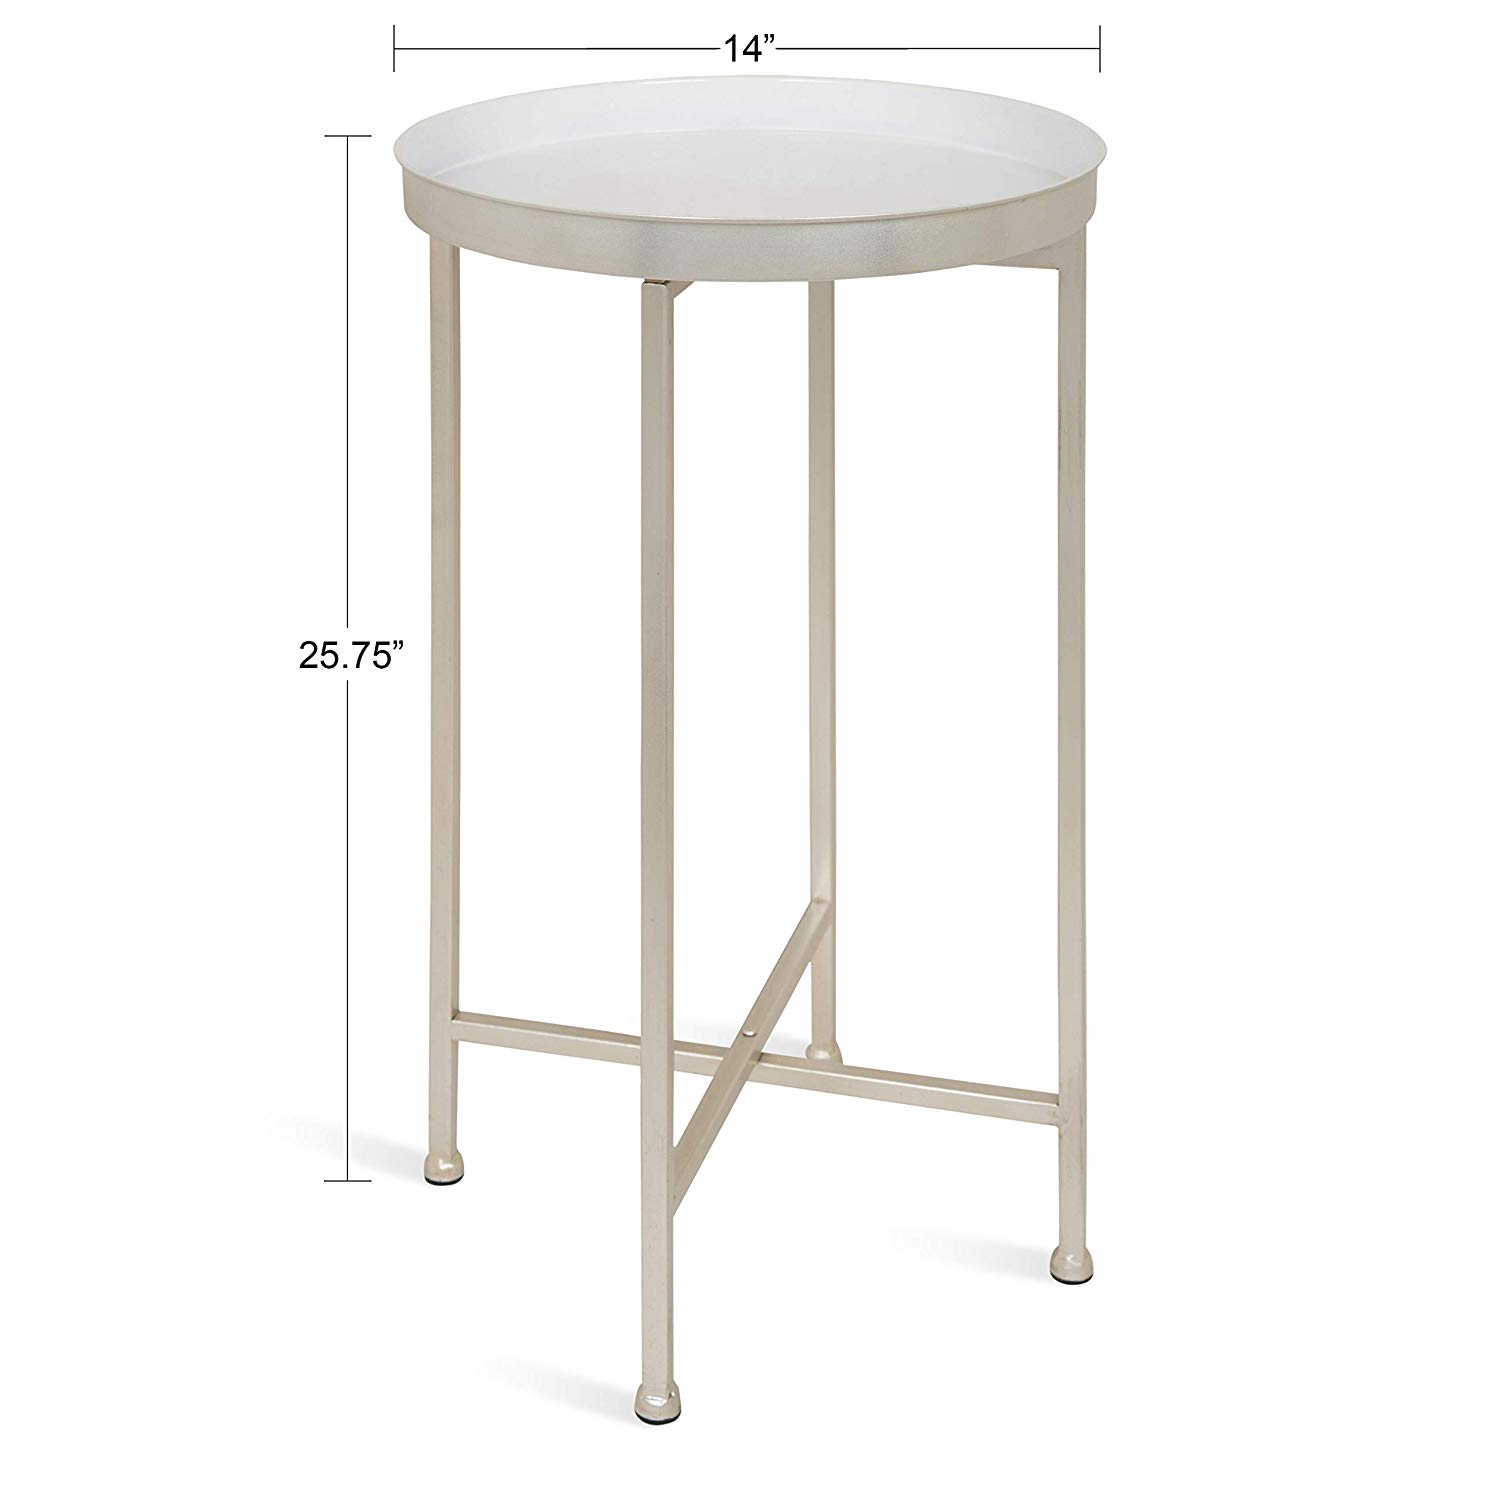 kate and laurel celia round metal foldable tray simplify oval accent table white with silver base kitchen dining small side wheels target wicker chairs teak folding removable legs